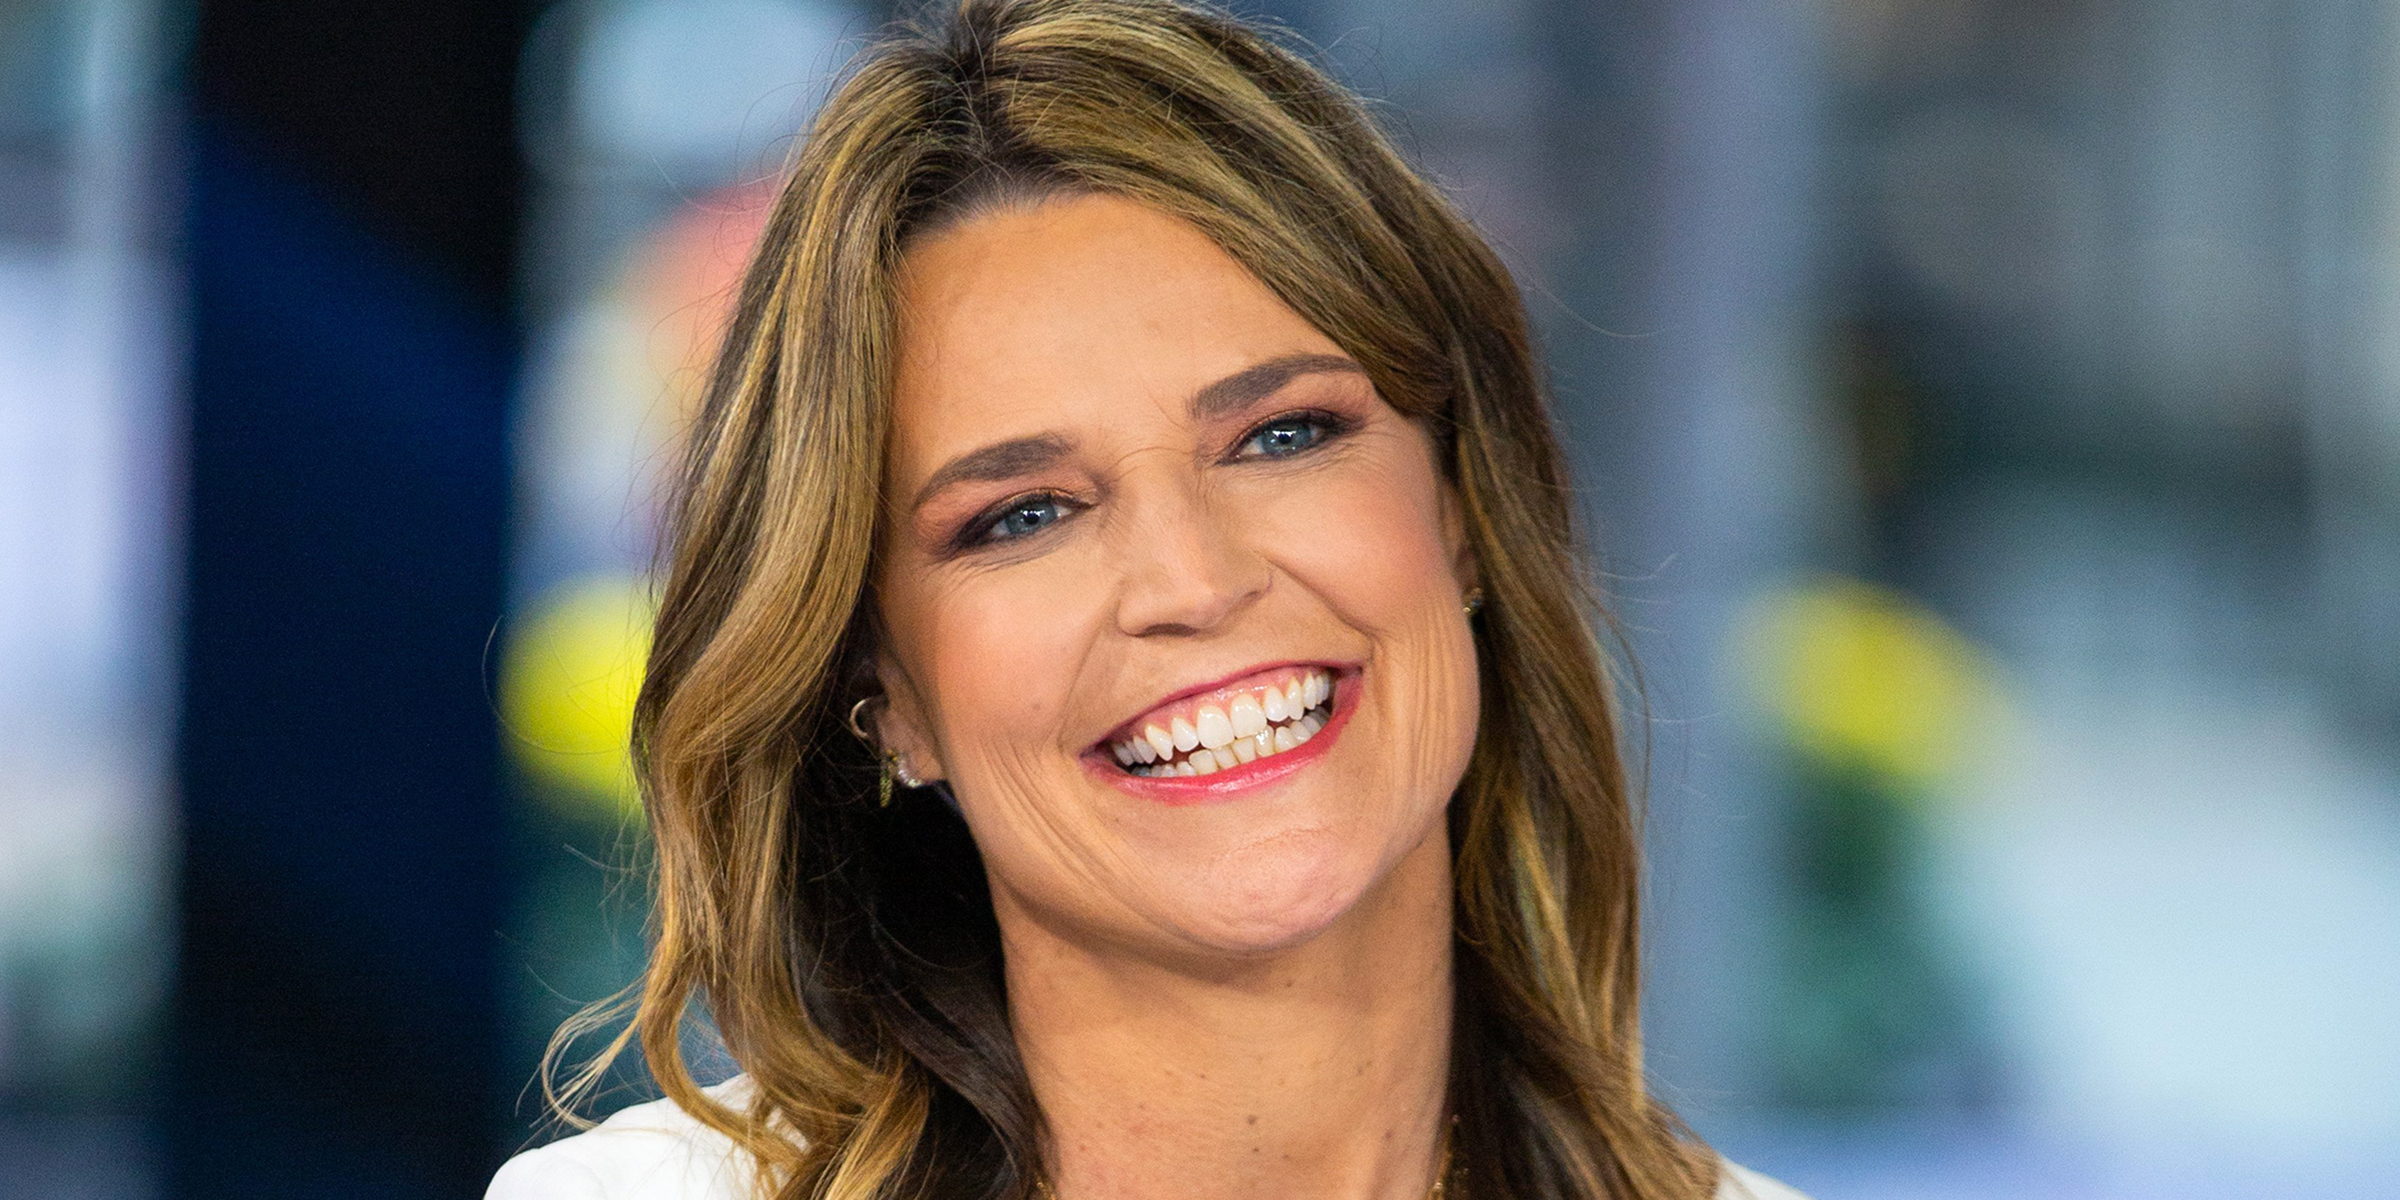 Savannah Guthrie Wears Two Hoops In One Ear Inspired By Jennifer Fisher